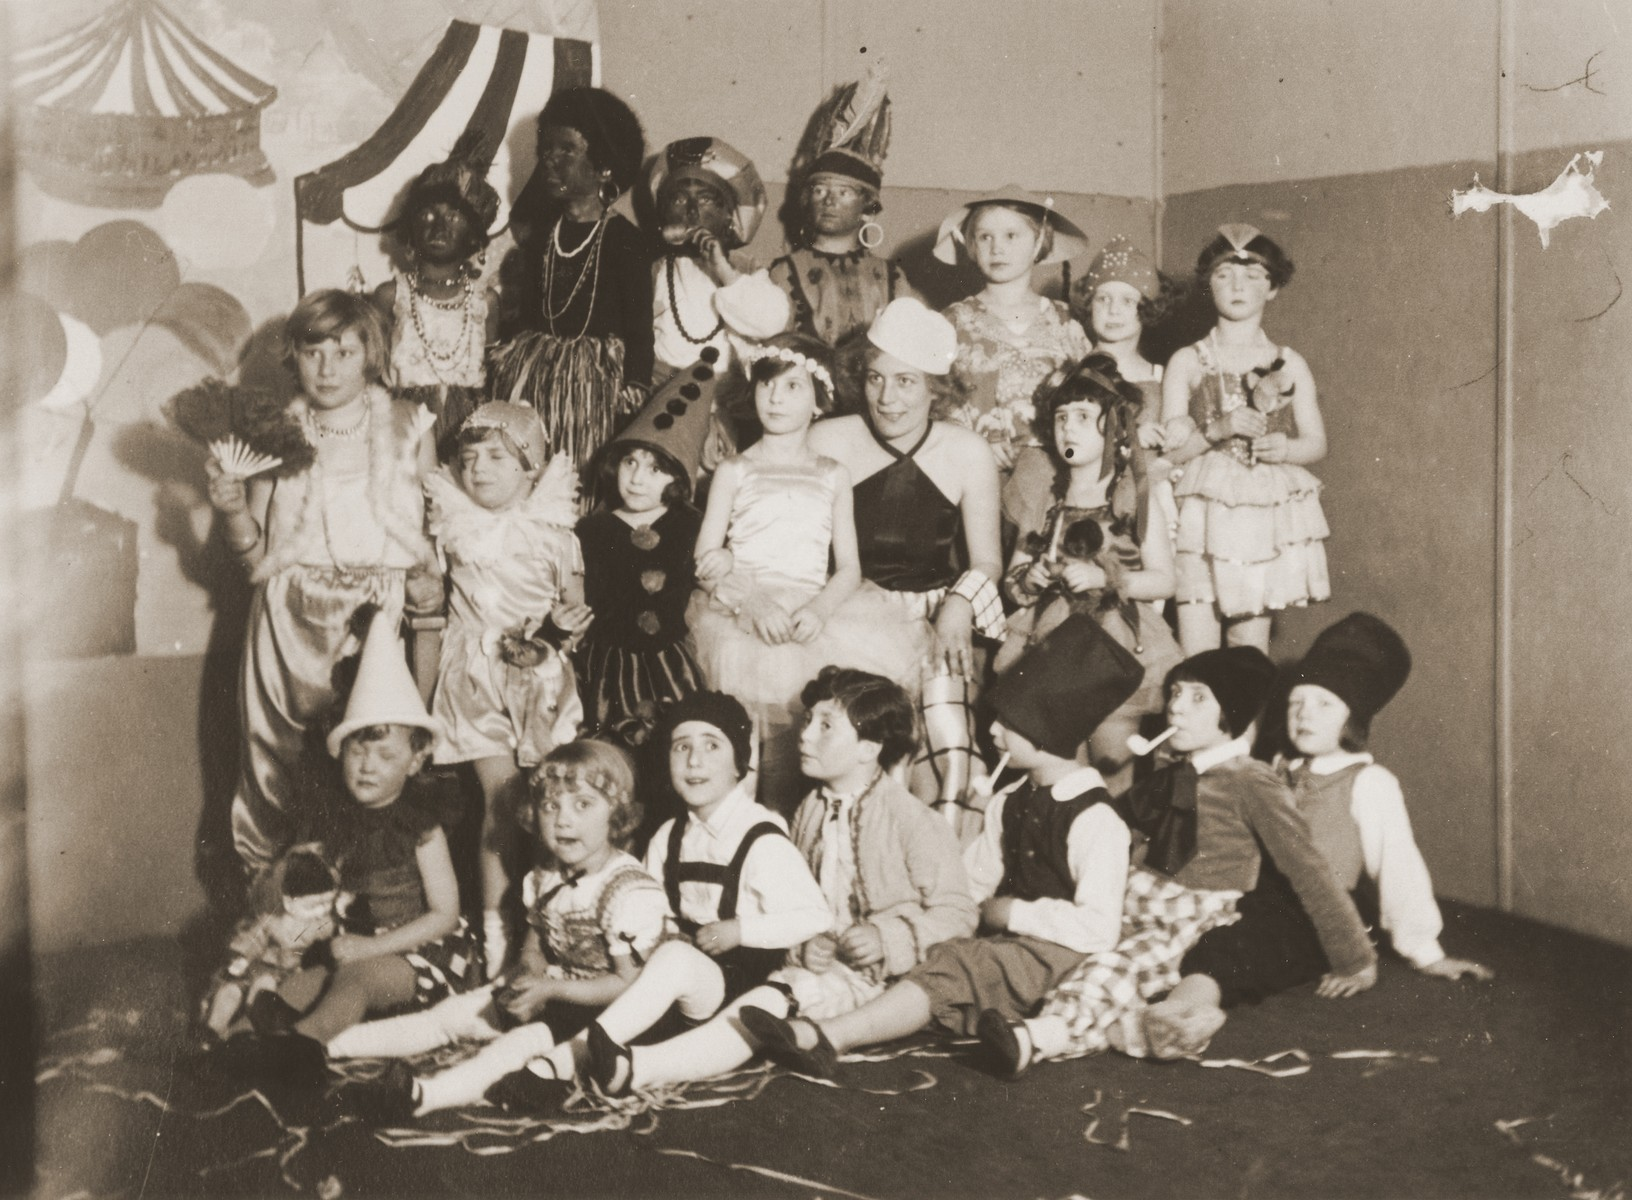 Children in Inge Marx's dance class pose in their costumes.